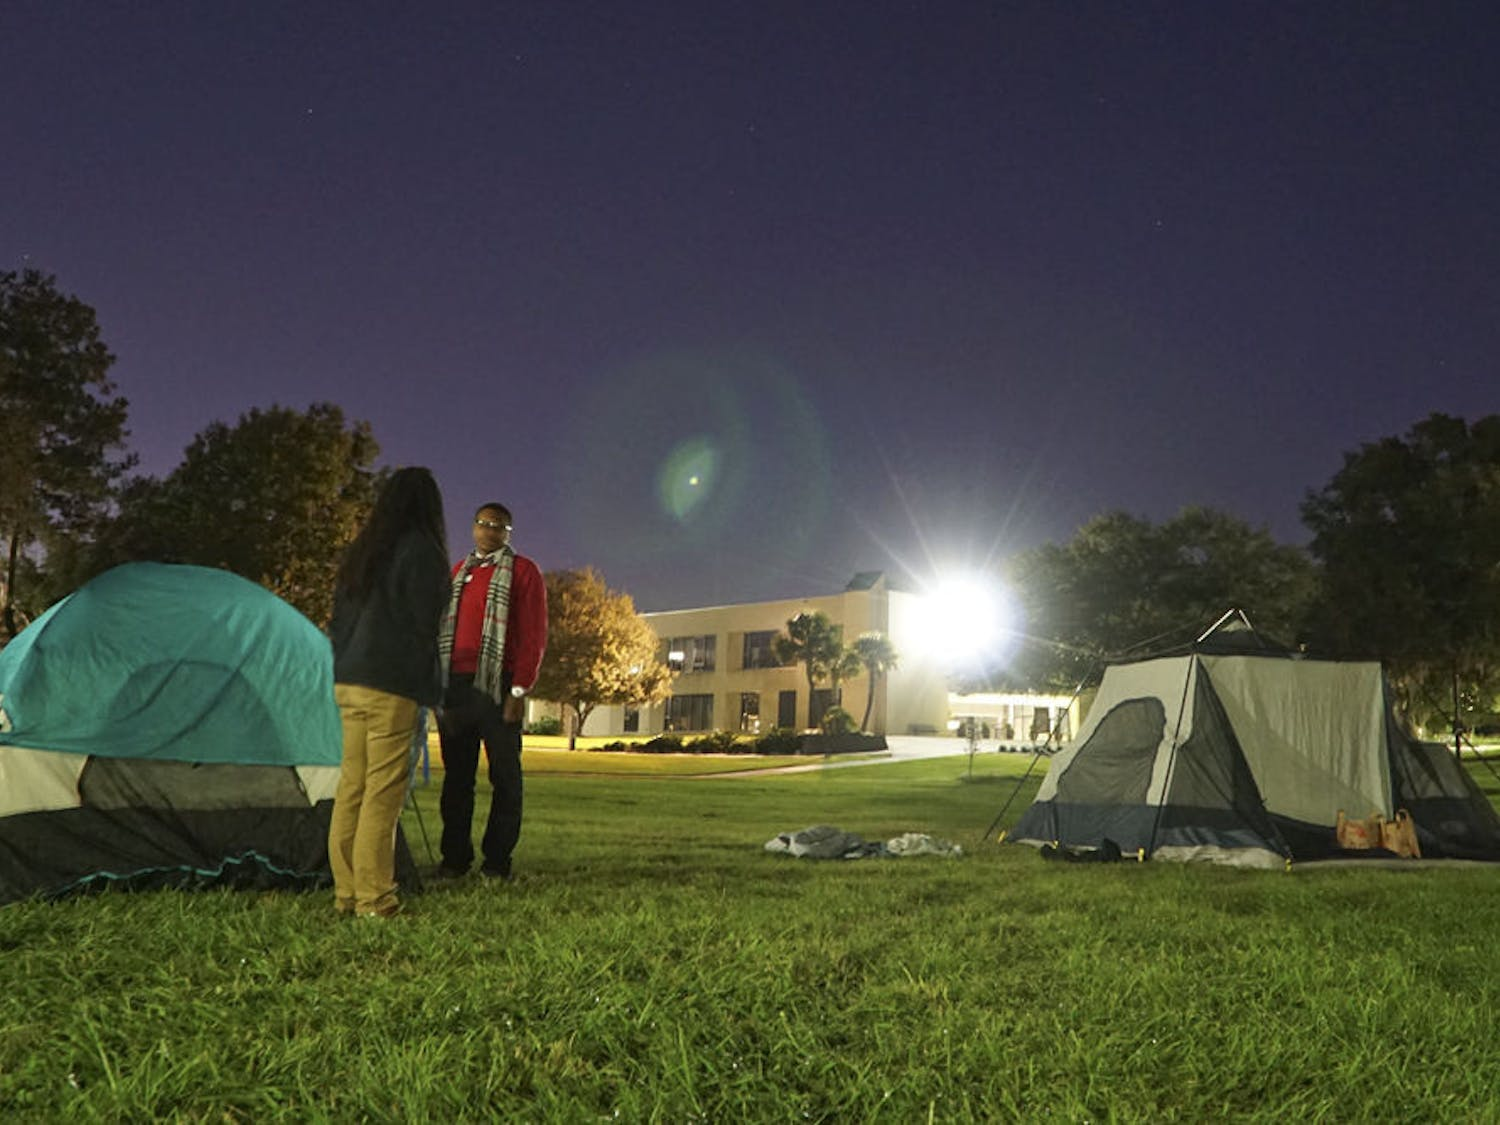 """Clarinda Choice (left), a 29-year-old Santa Fe student leadership and activity specialist, and Jacobi Bedenfield, a 19-year-old Santa Fe agriculture freshman, chat under Santa Fe's """"Oak Grove"""" late Nov. 23, 2015. Choice and Bedenfield were two of the five participants raising awareness for homelessness by camping overnight at the college."""